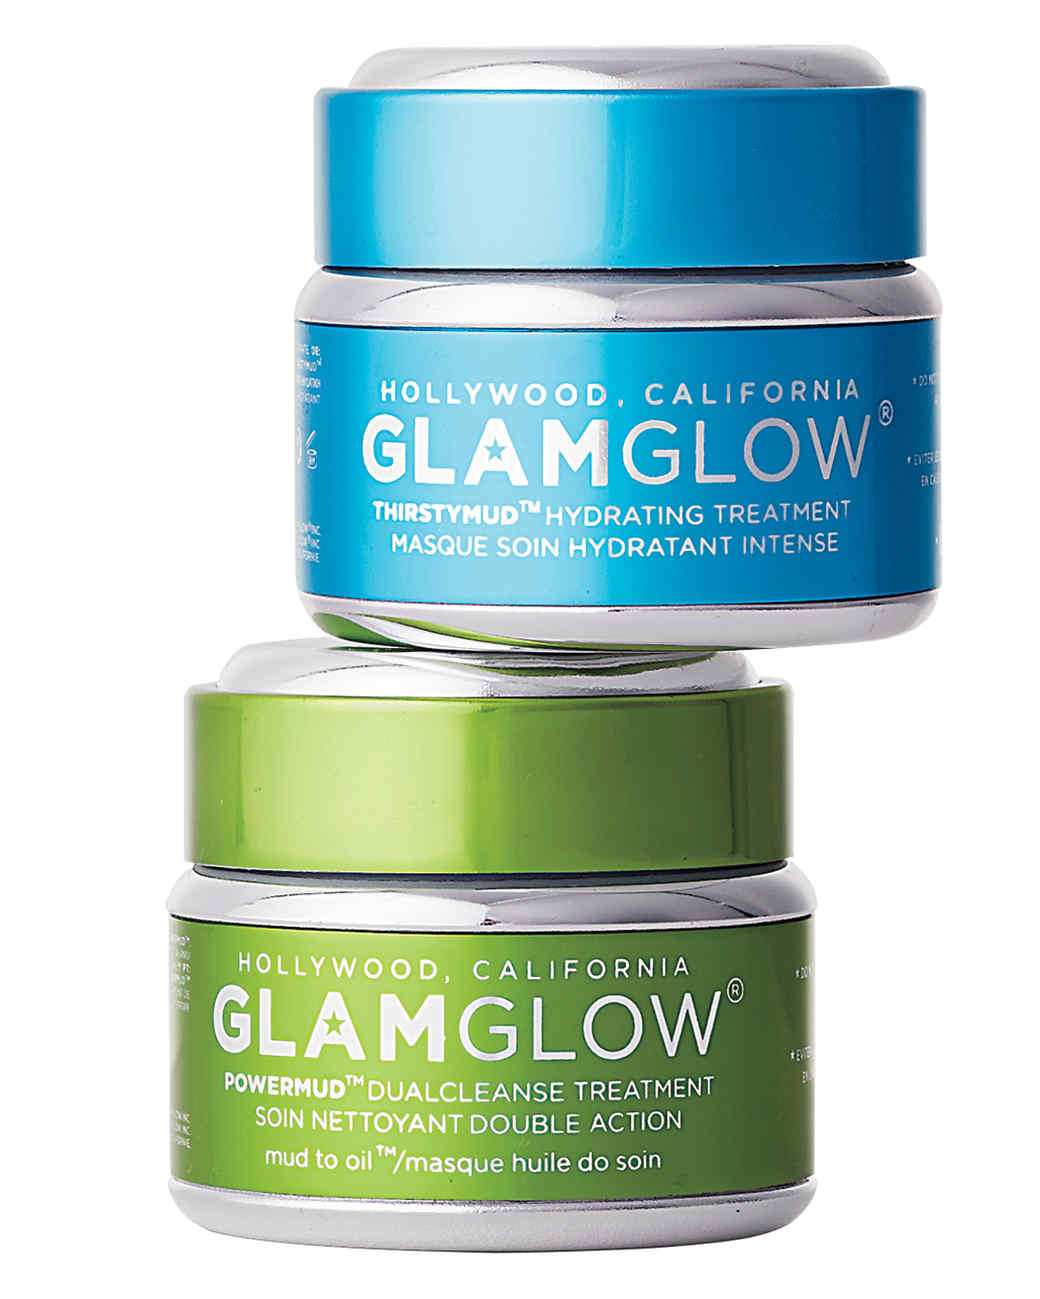 glam-glow-cleanser-and-mask-141-d112219.jpg